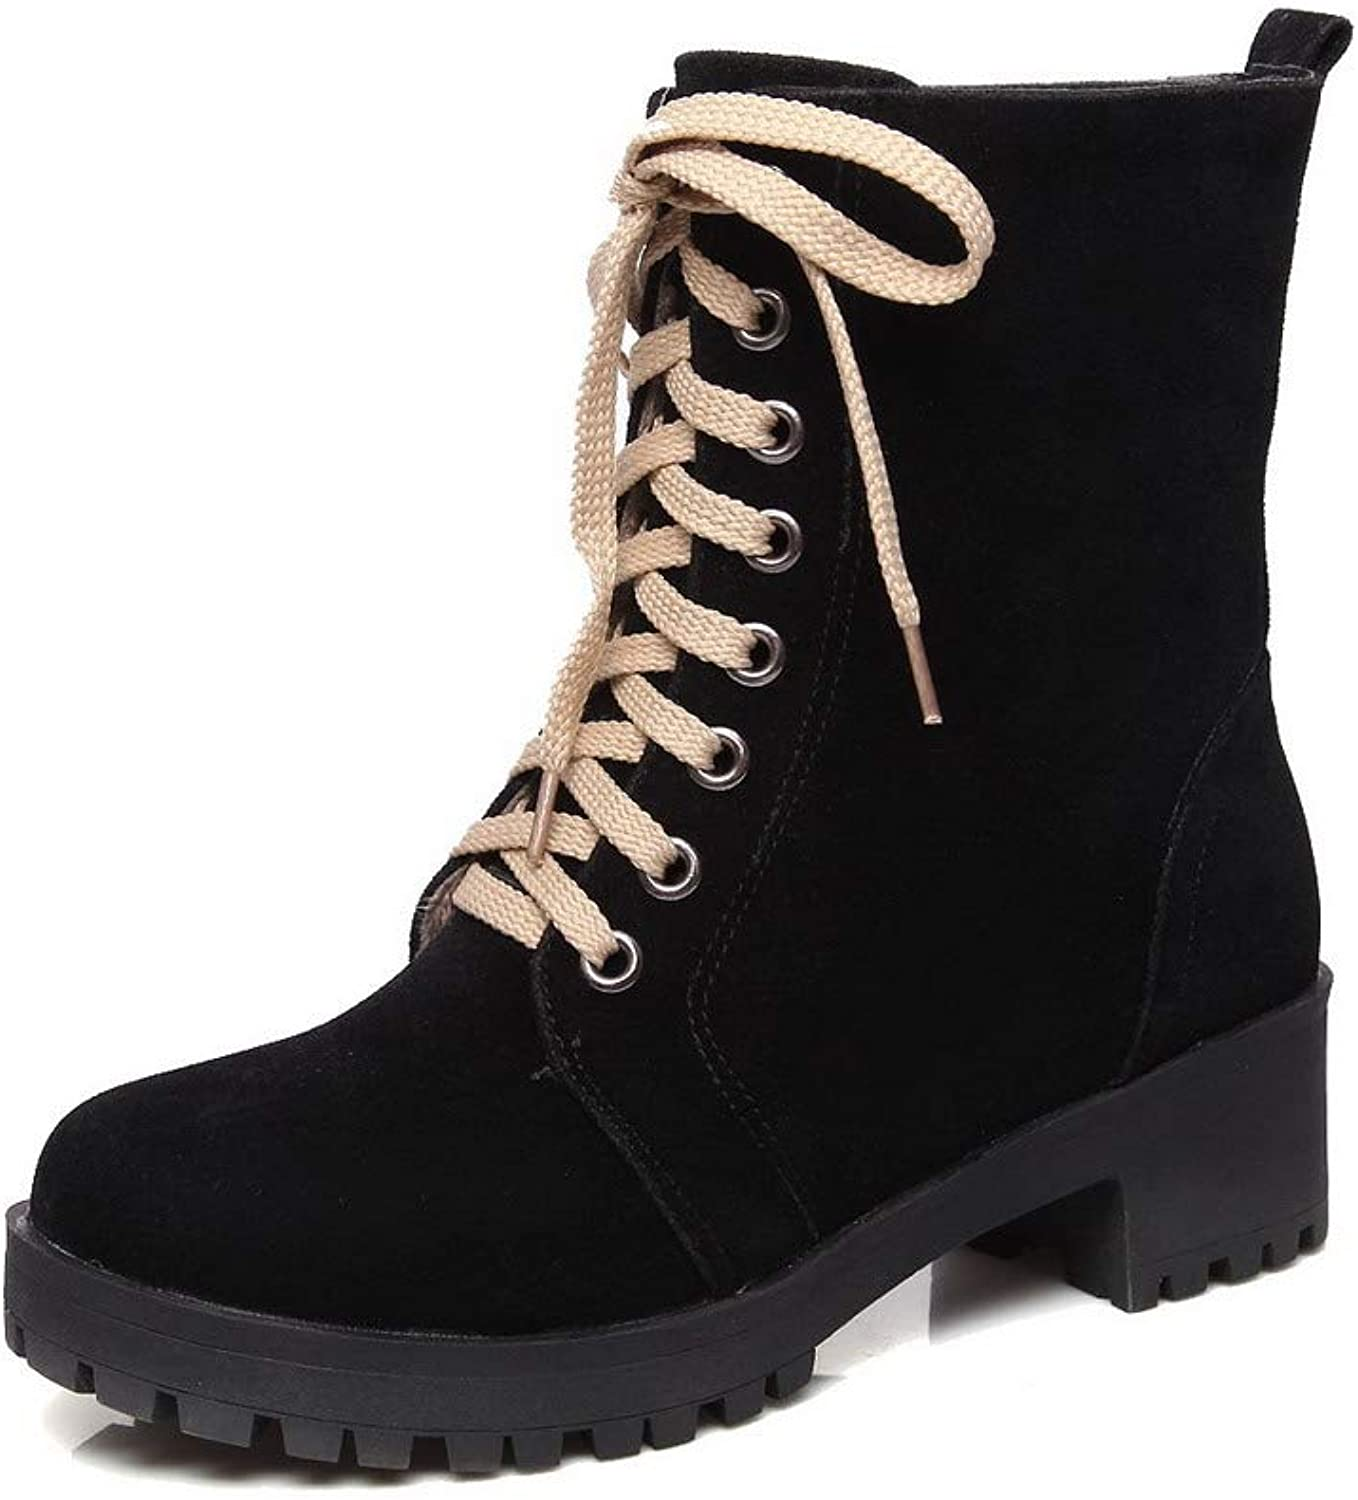 WeiPoot Women's Mid-Calf Lace-Up Frosted Kitten-Heels Round-Toe Boots, EGHXH026791